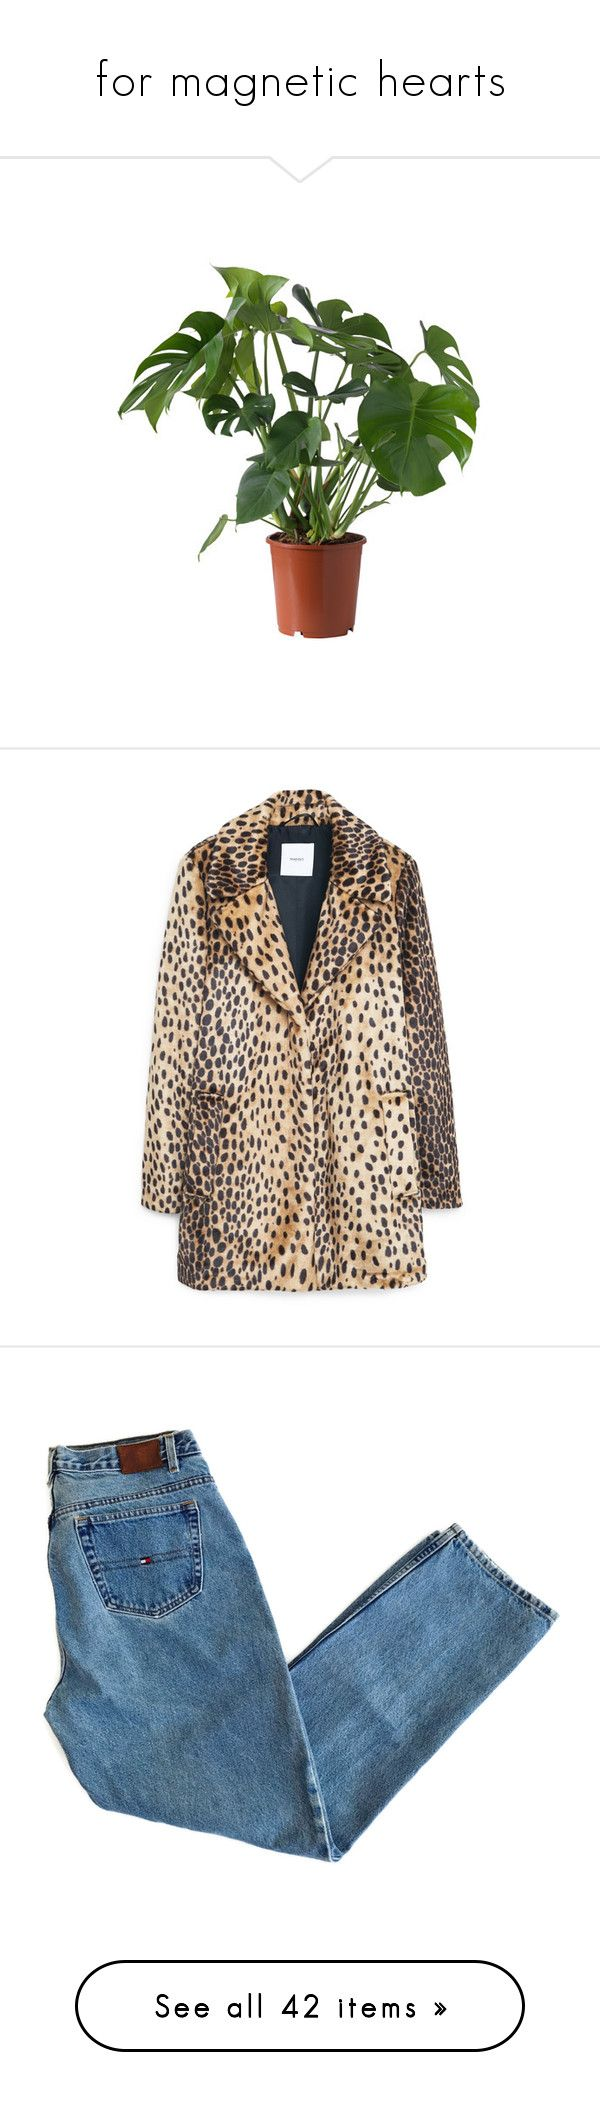 """for magnetic hearts"" by louisesuxx ❤ liked on Polyvore featuring plants, outerwear, coats, jackets, fur coat, coats & jackets, mango coats, leopard print coat, leopard coat and leopard print faux fur coat"